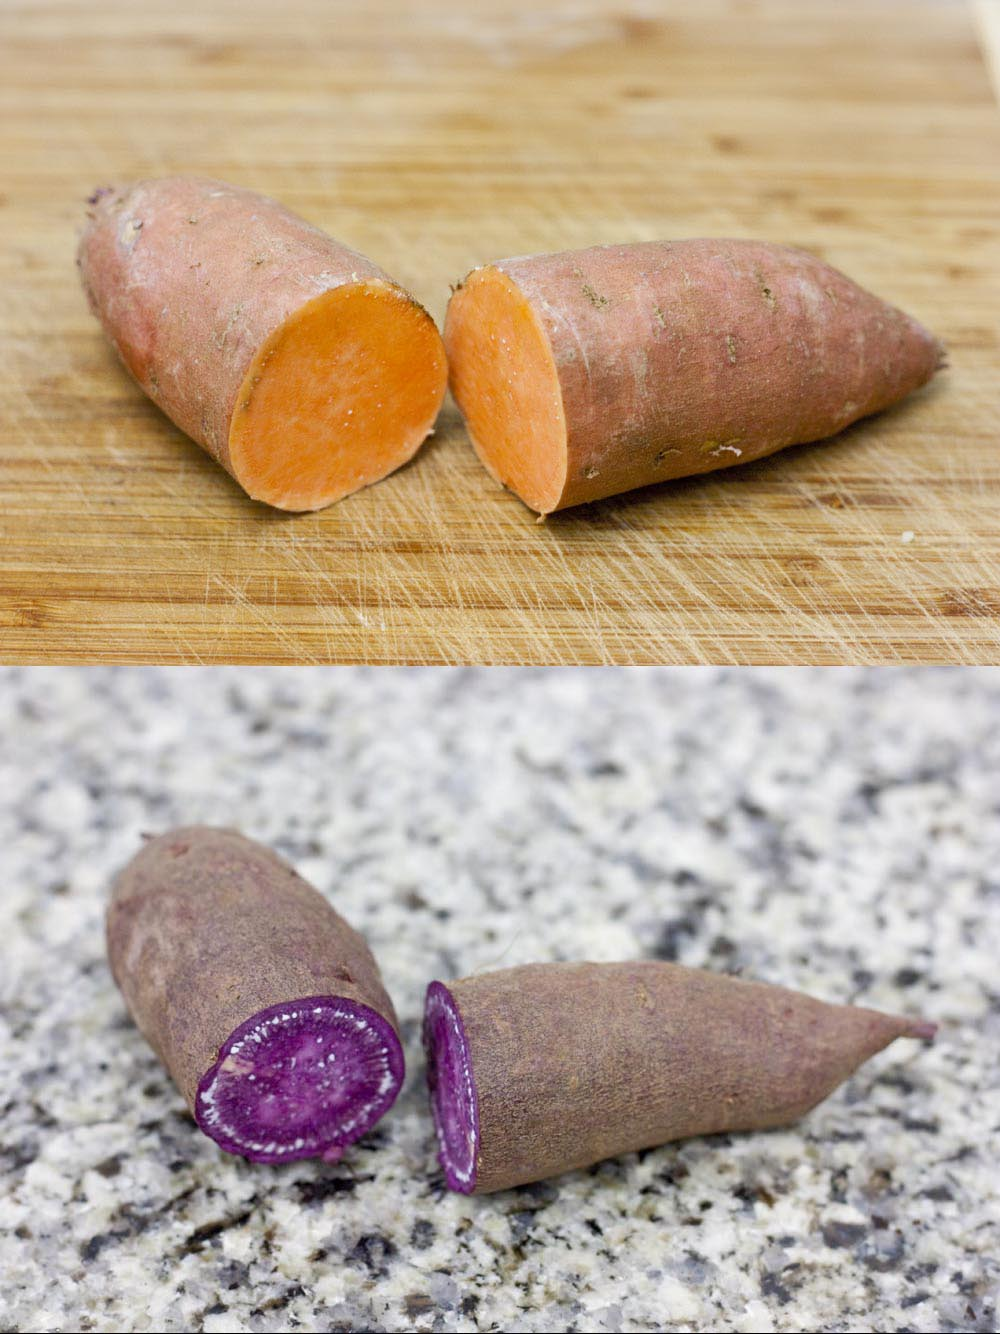 Once sweet potatoes are cut, the differences between the types are obvious.